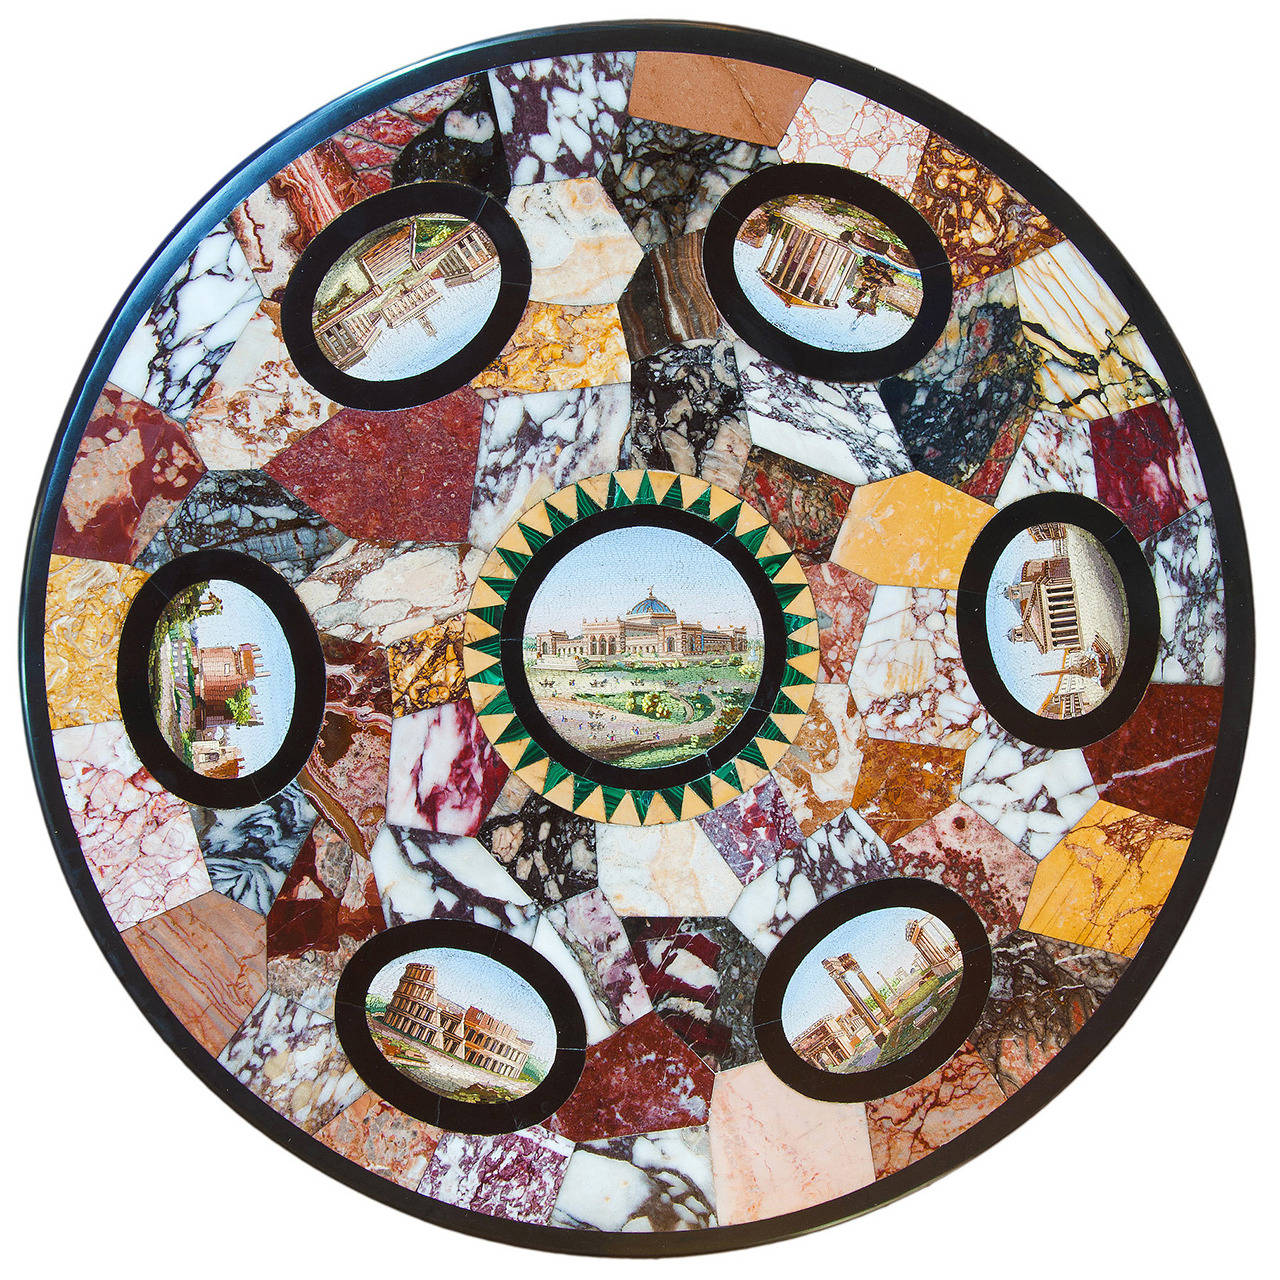 Marble table top - Rare 1876 Micro Mosaic And Specimen Marble Table Top From The Us Centennial Expo 1